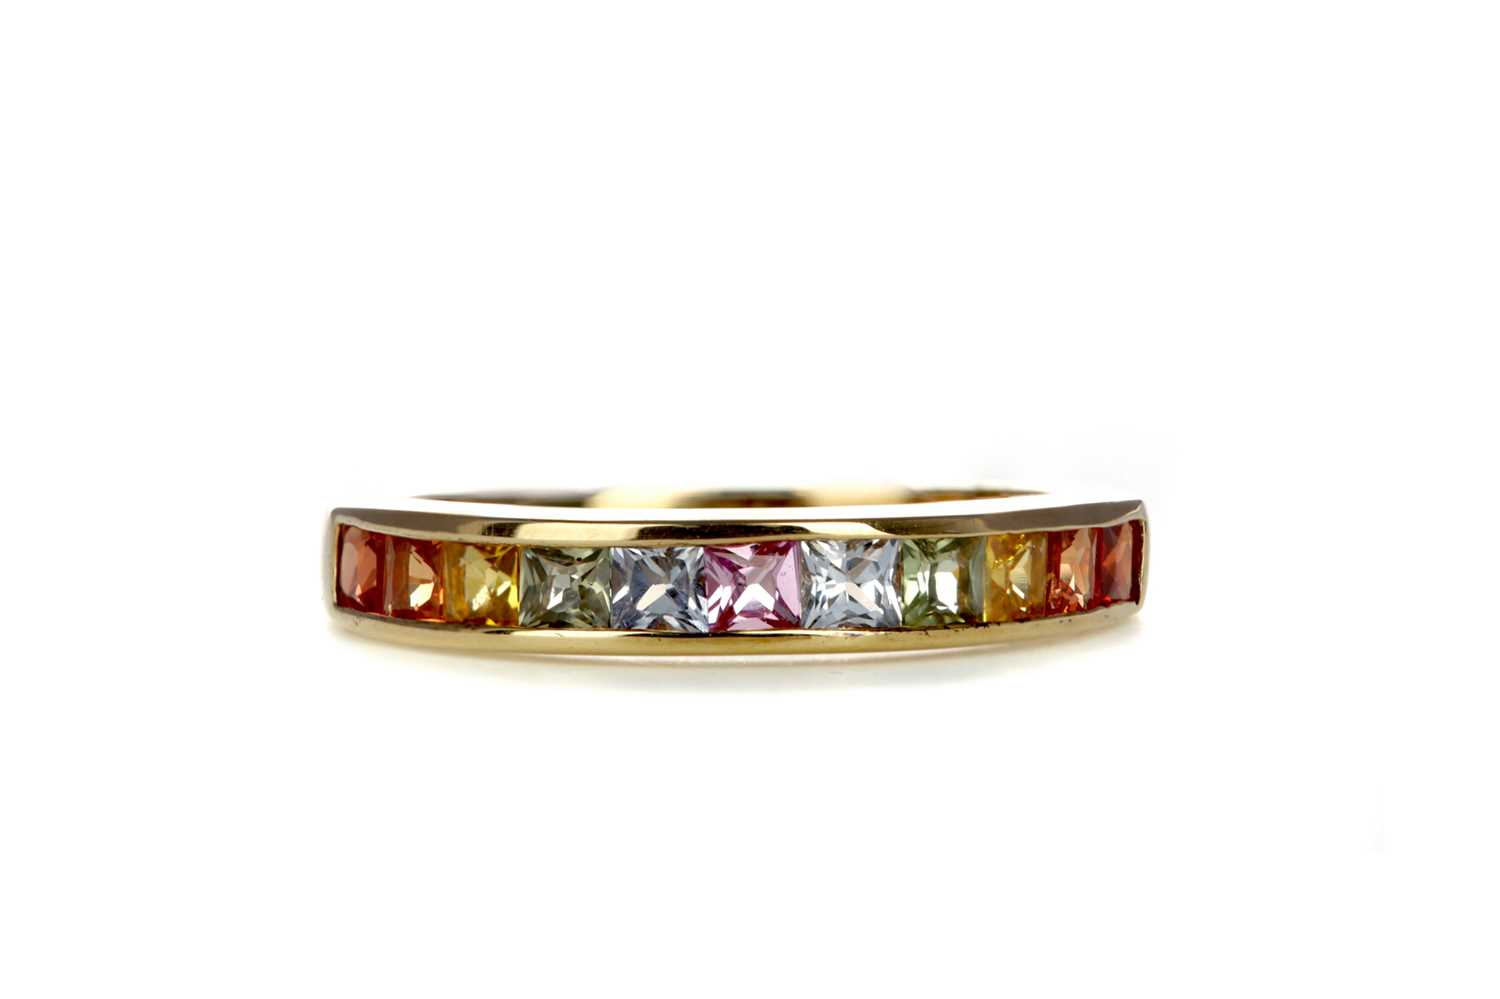 Lot 386 - A MULITCOLOURED SAPPHIRE RING